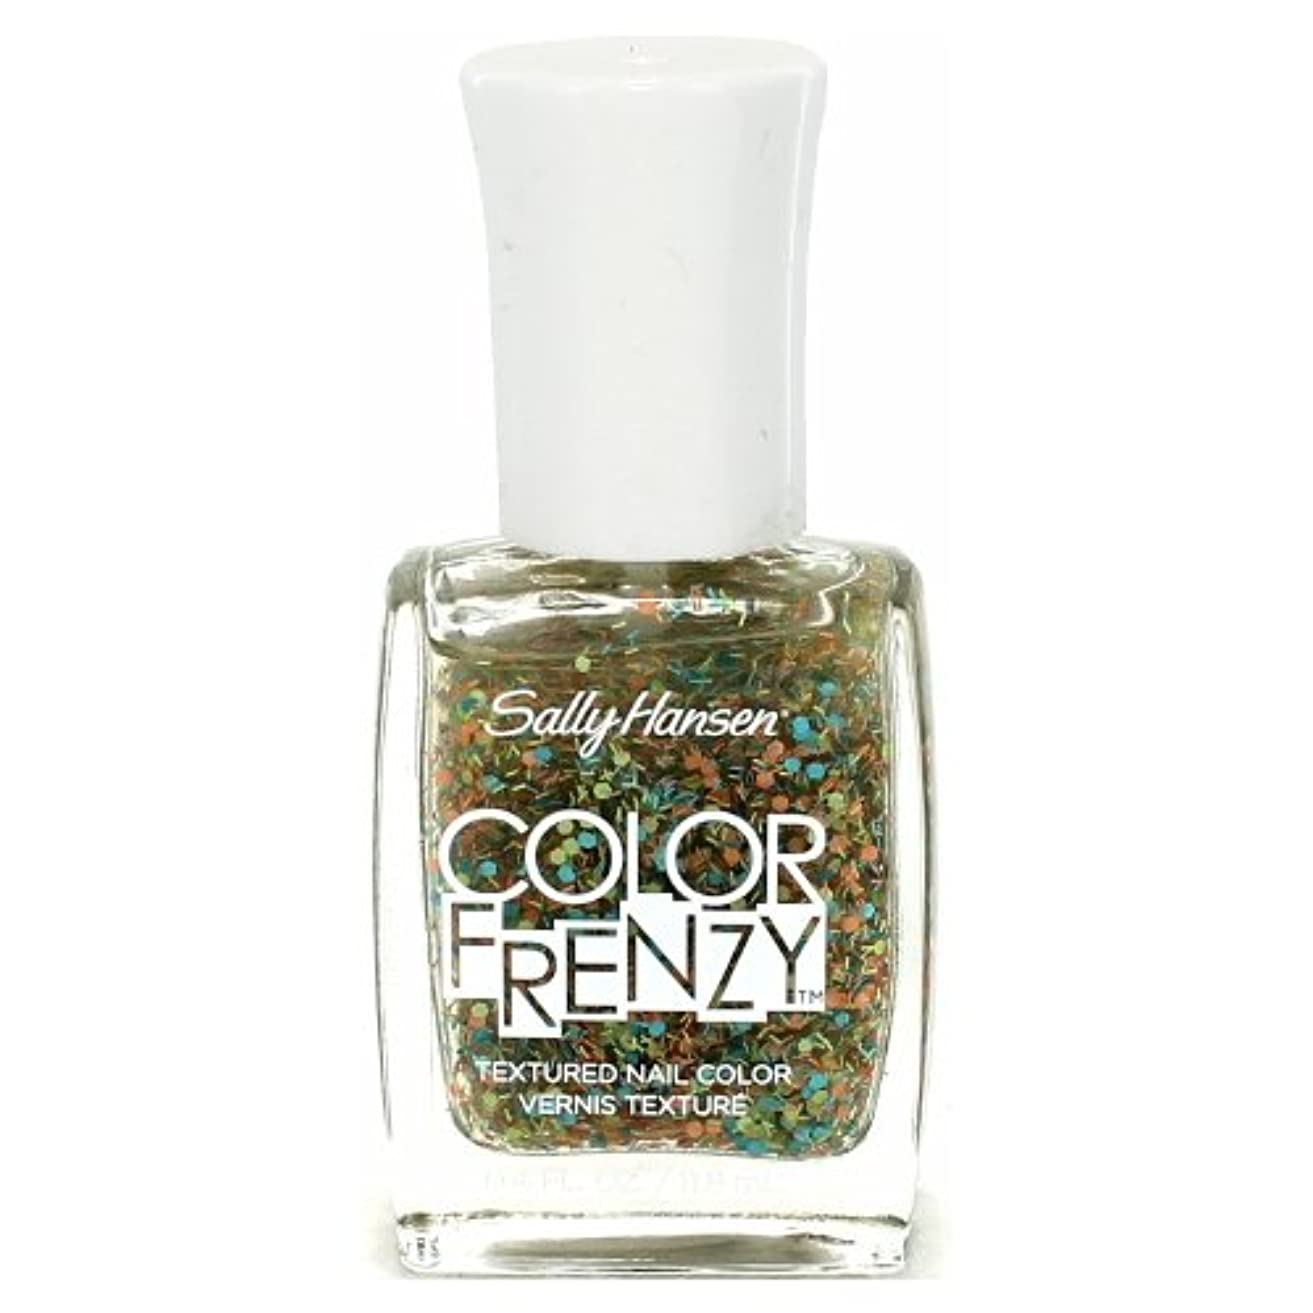 ヘビー銃マント(3 Pack) SALLY HANSEN Color Frenzy Textured Nail Color - Paint Party (並行輸入品)